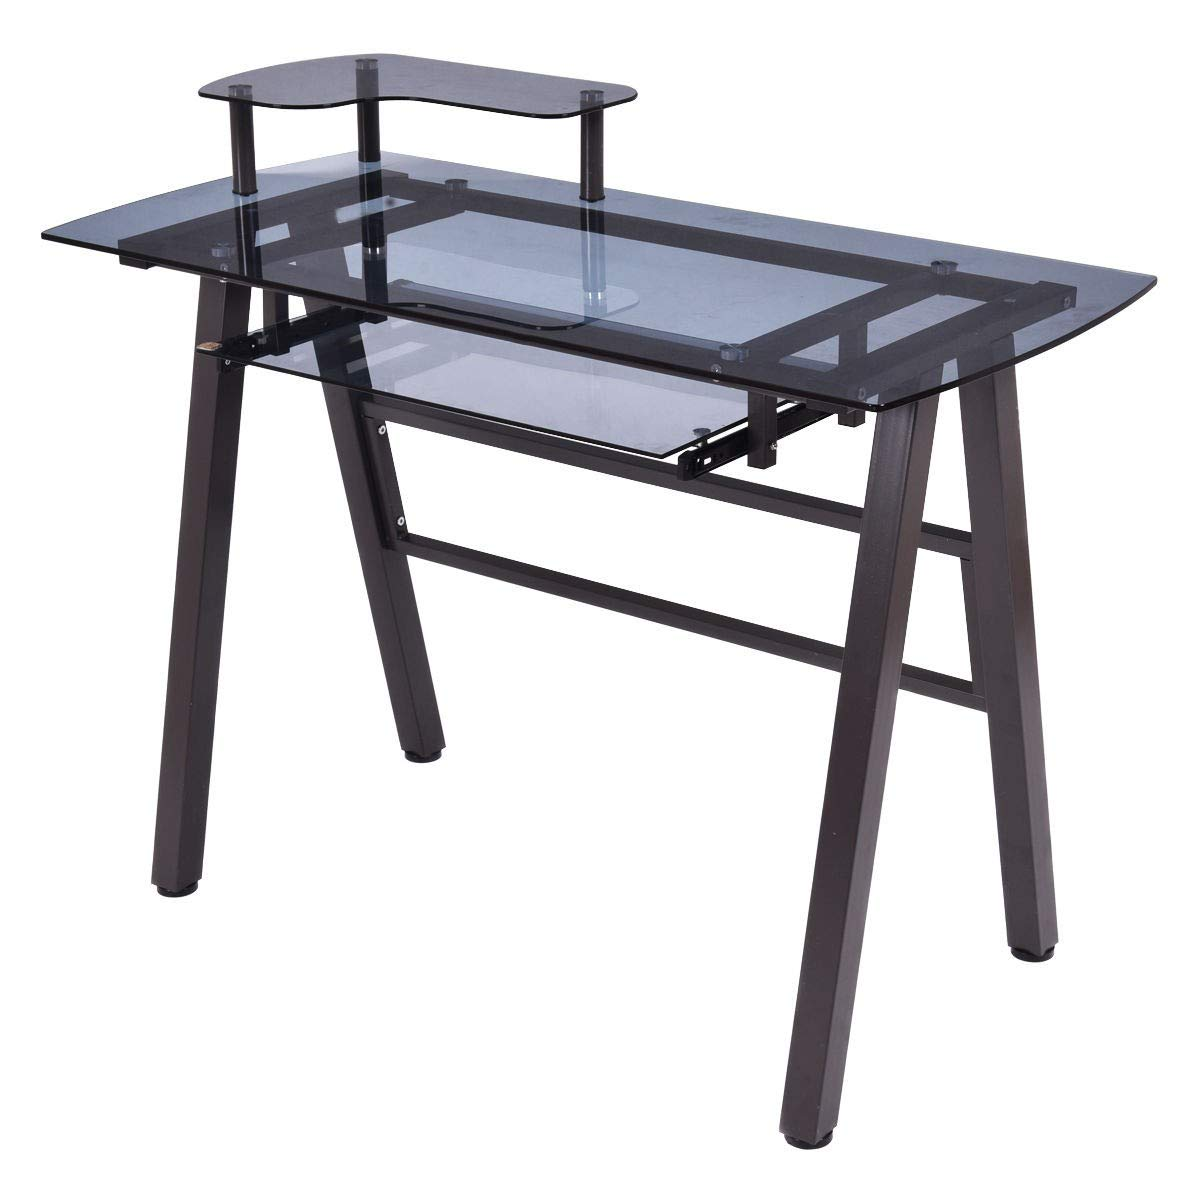 MD Group Glass Top Computer Desk with Printer Shelf